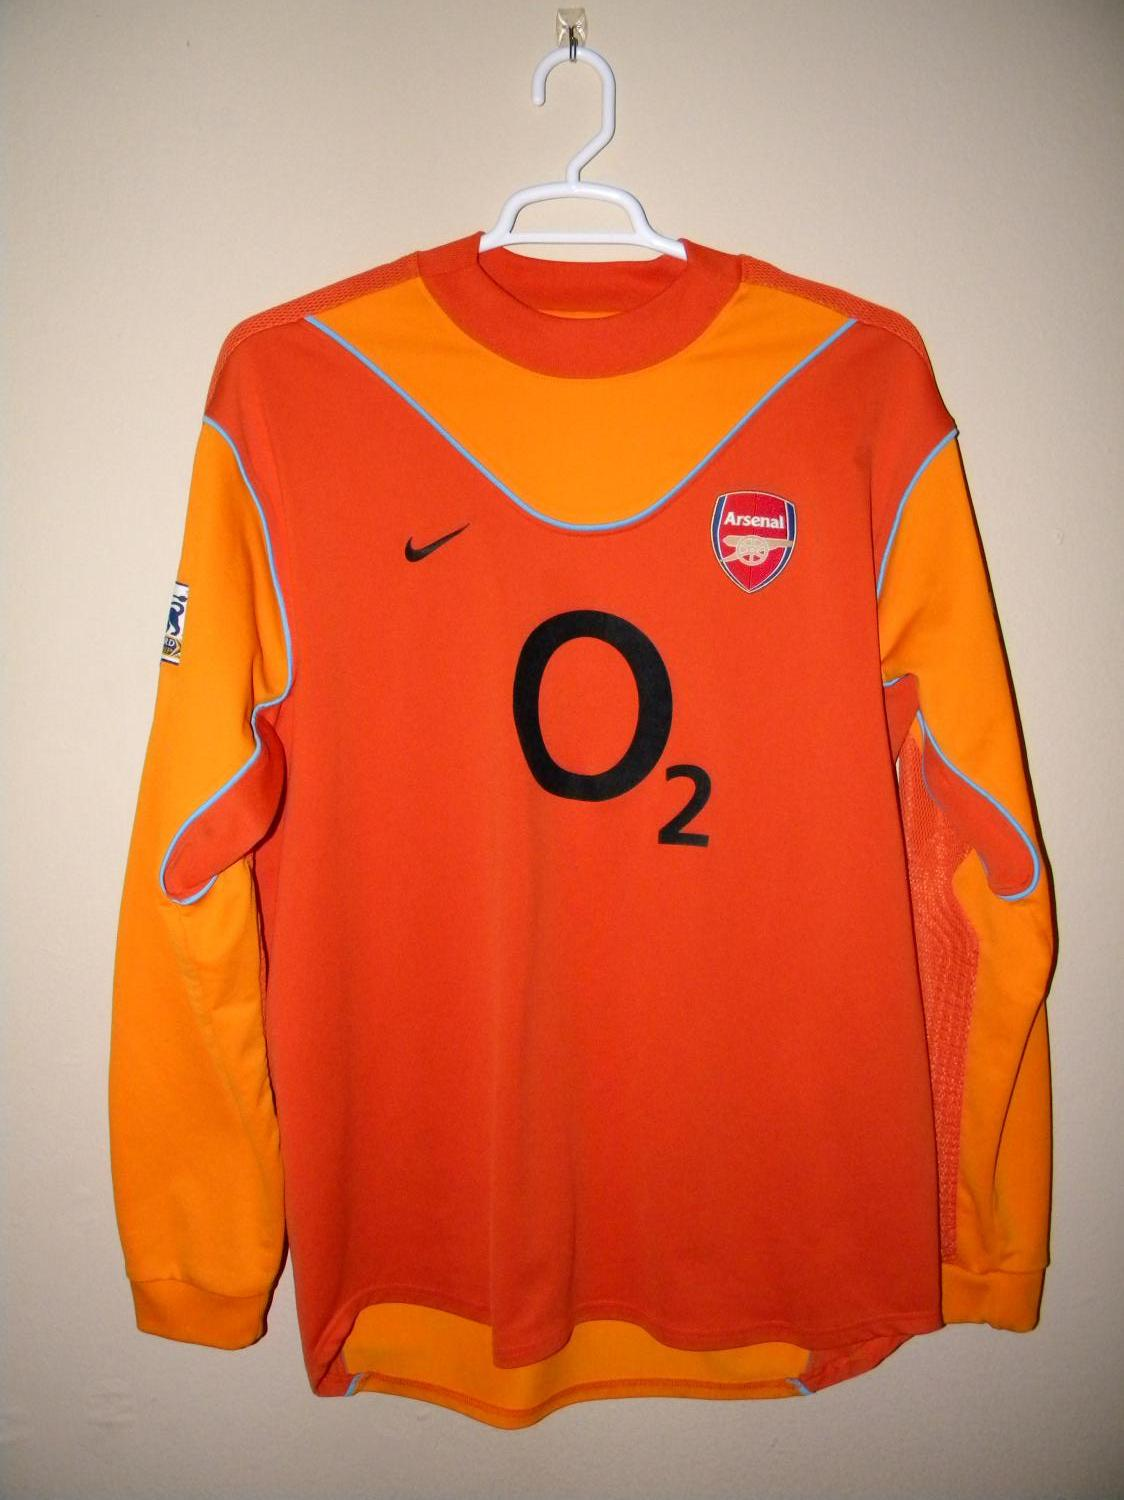 fa82dc70f Arsenal Goalkeeper Maillot de foot 2003 - 2004. Sponsored by O2